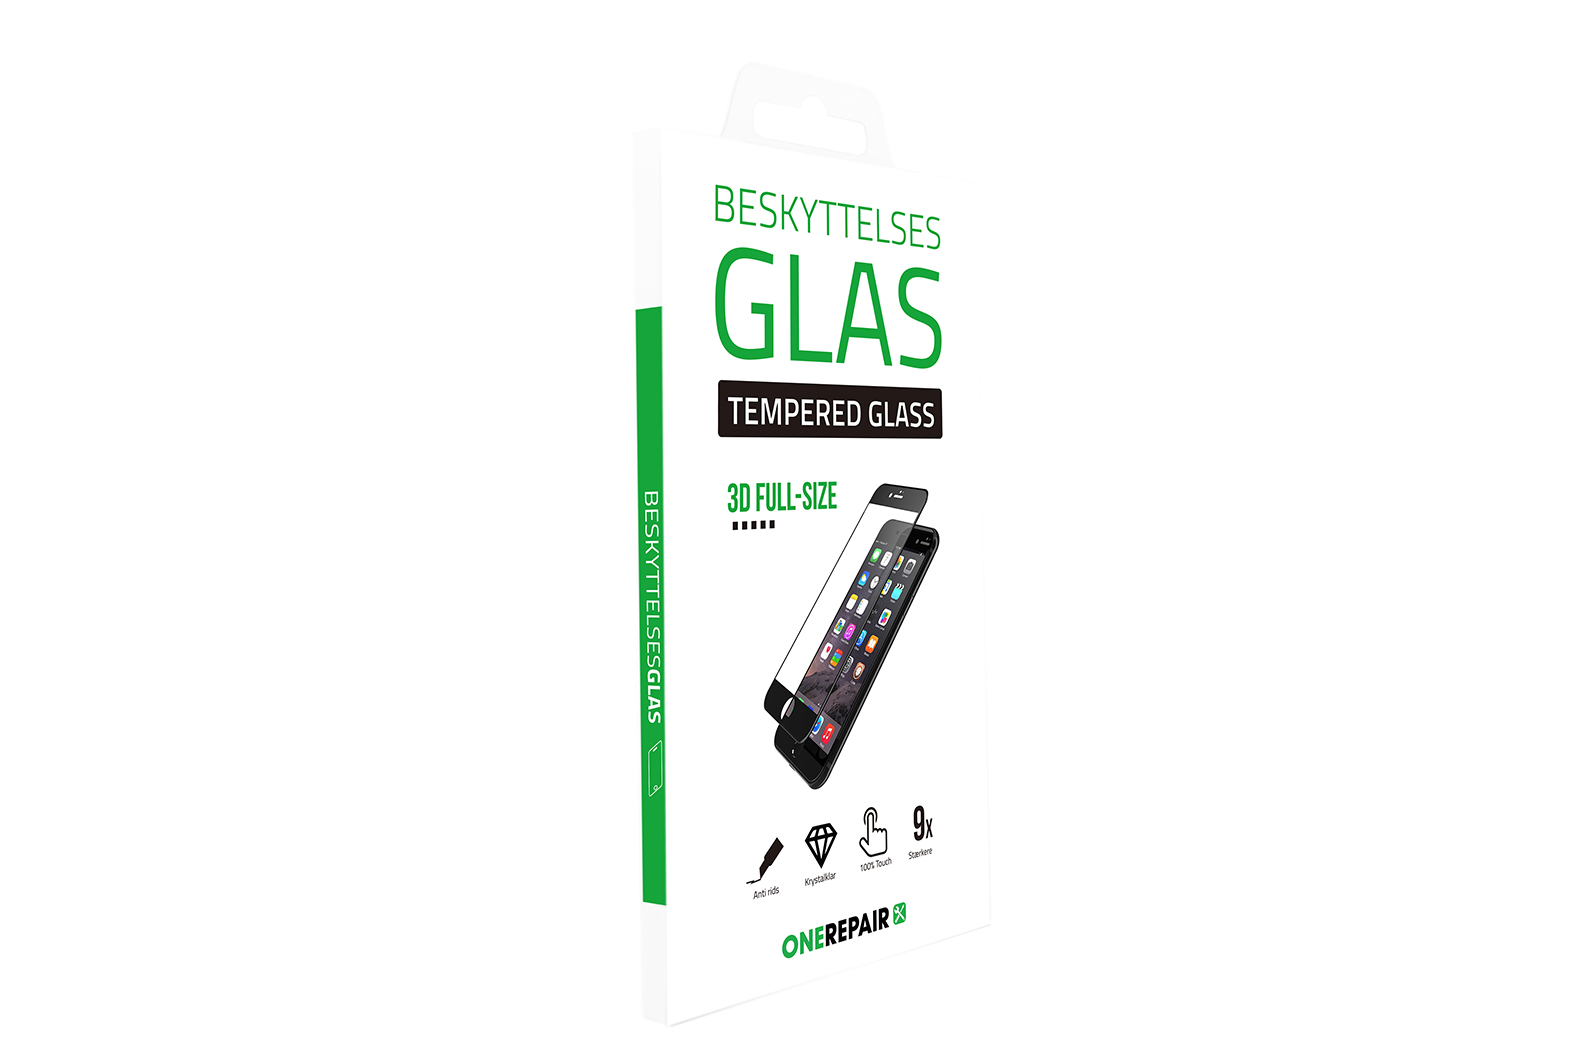 _iPhone_Fullsize_Full_Size_3D_Beskyttelses_glas_Panser_Panzer_Tempered_Glass_OneRepair_00002